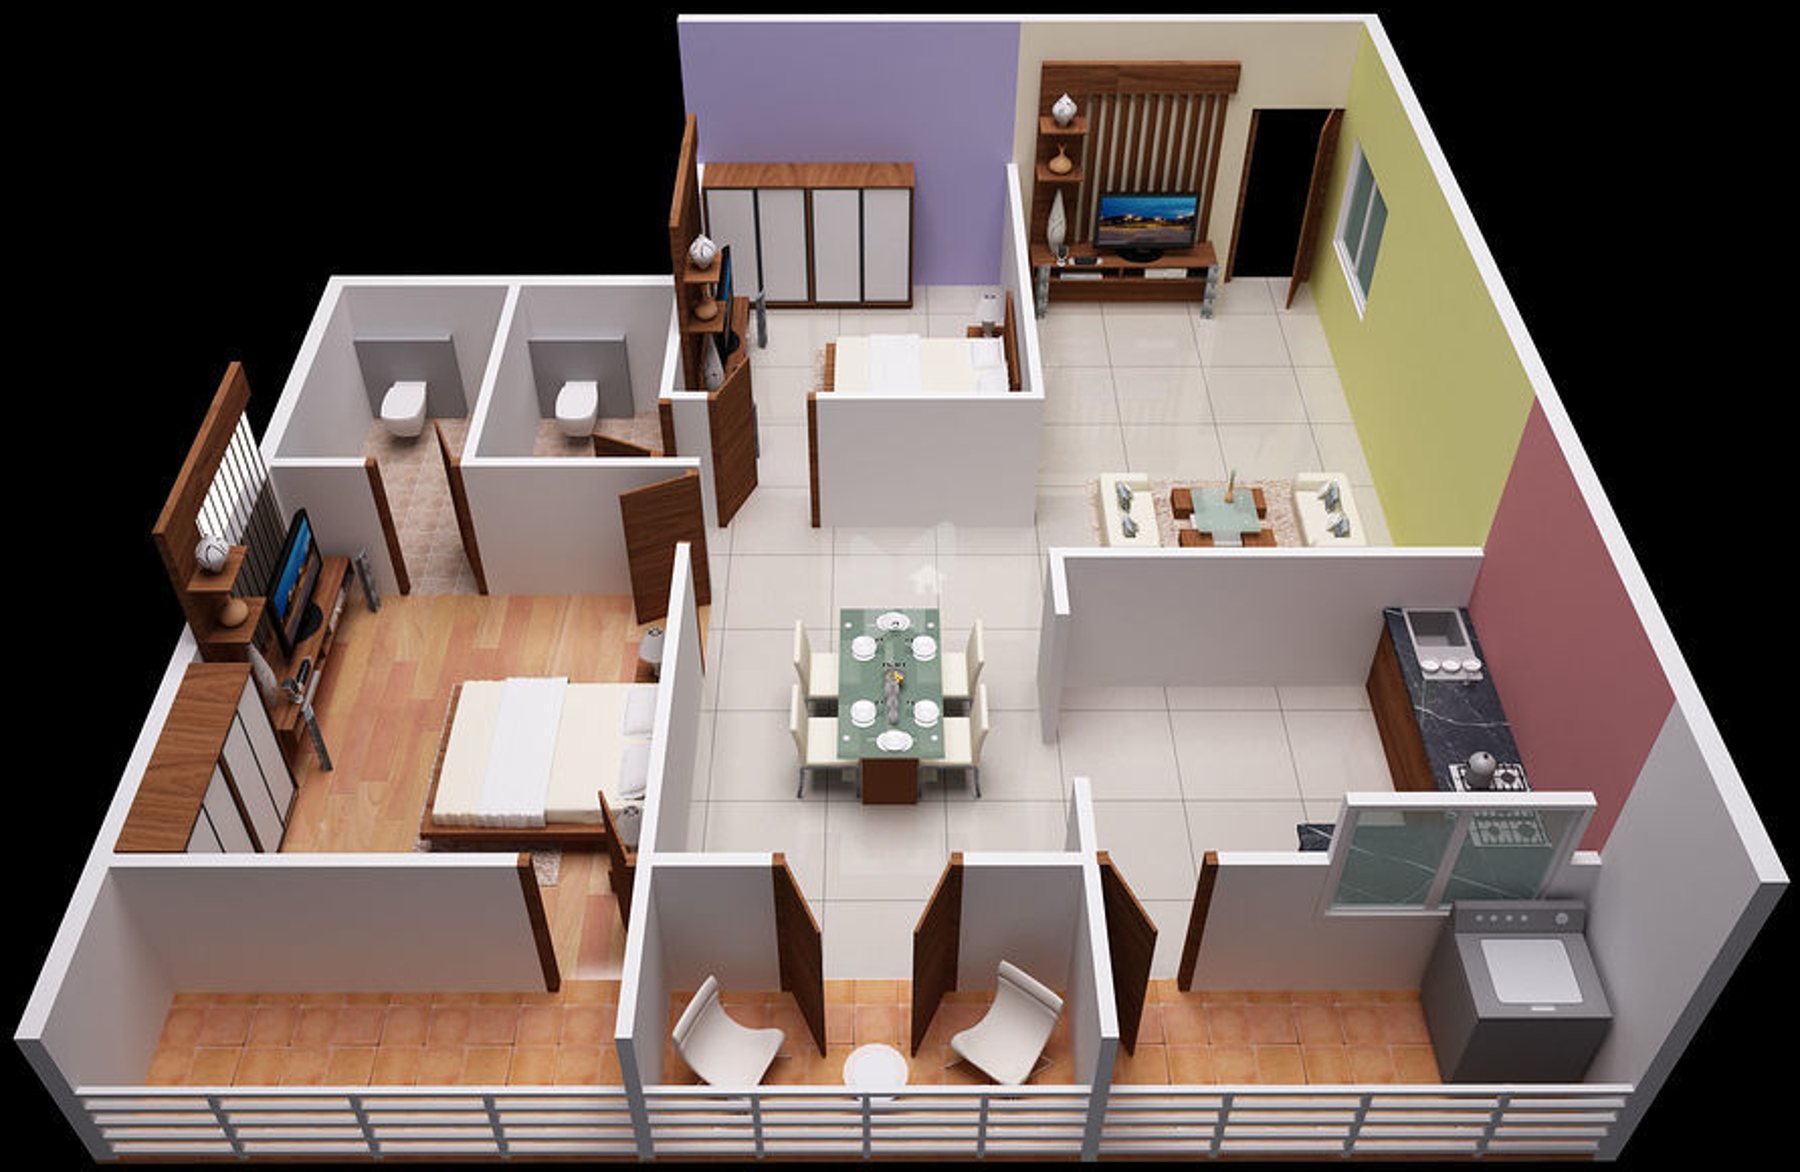 1205 sq ft 2 bhk 2t apartment for sale in sunshine builders silicon oasis whitefield hope farm. Black Bedroom Furniture Sets. Home Design Ideas